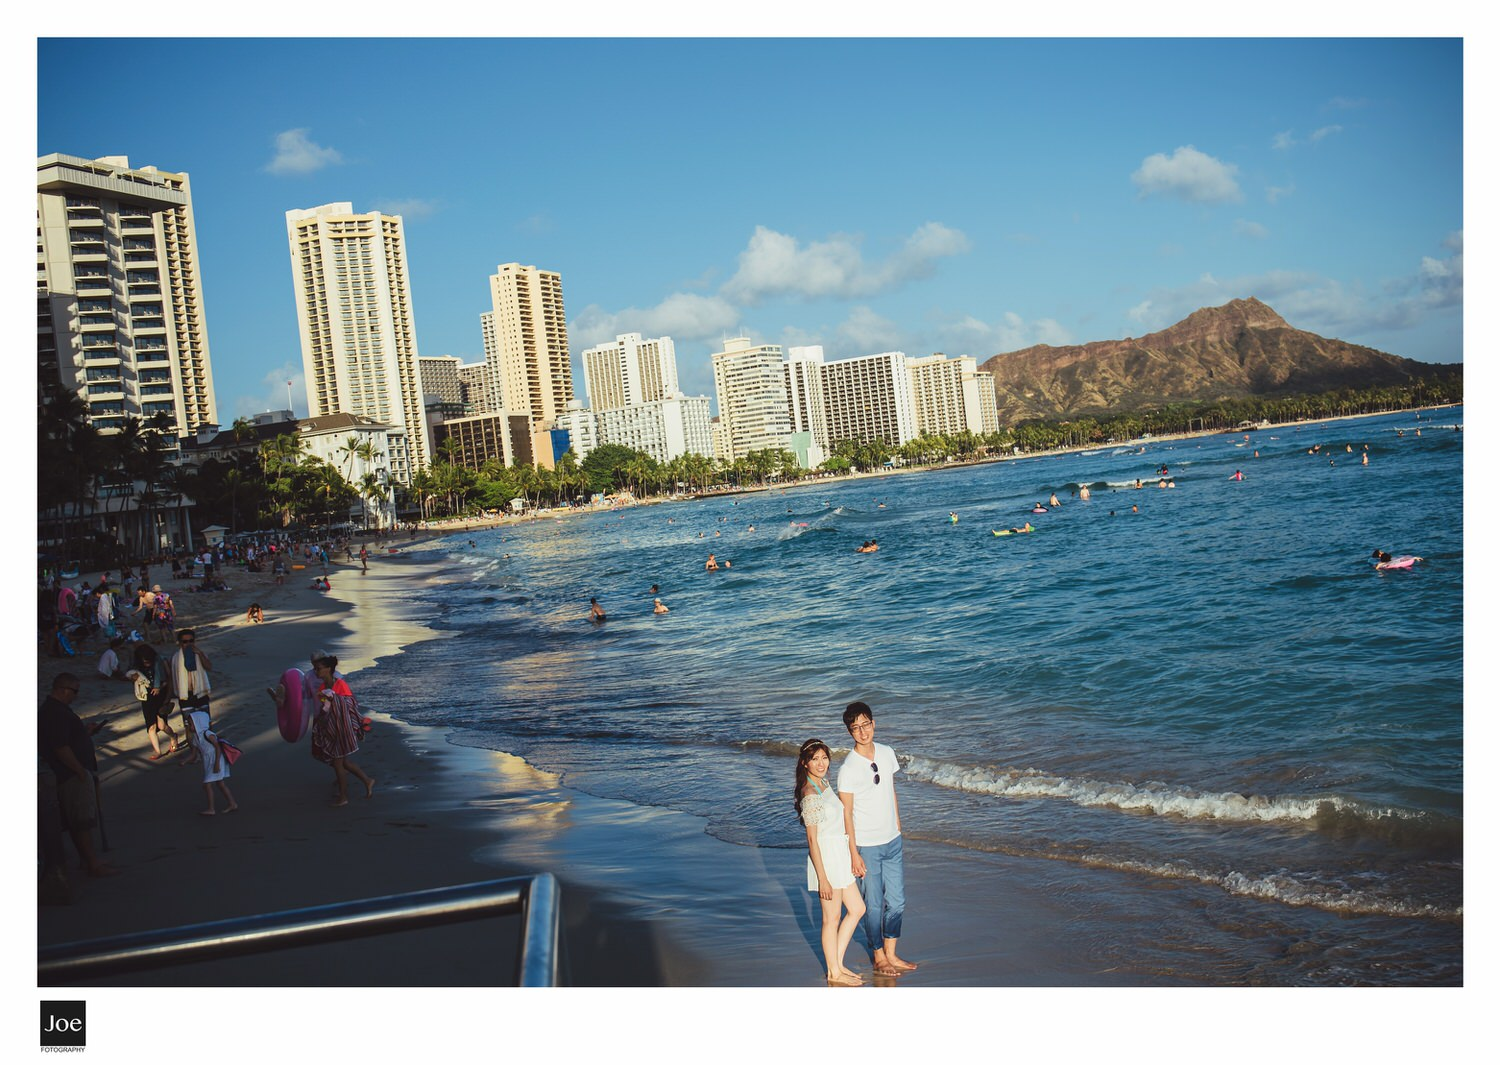 126-waikiki-beach-hawaii-pre-wedding-tiffany-tony-joe-fotography.jpg.jpg